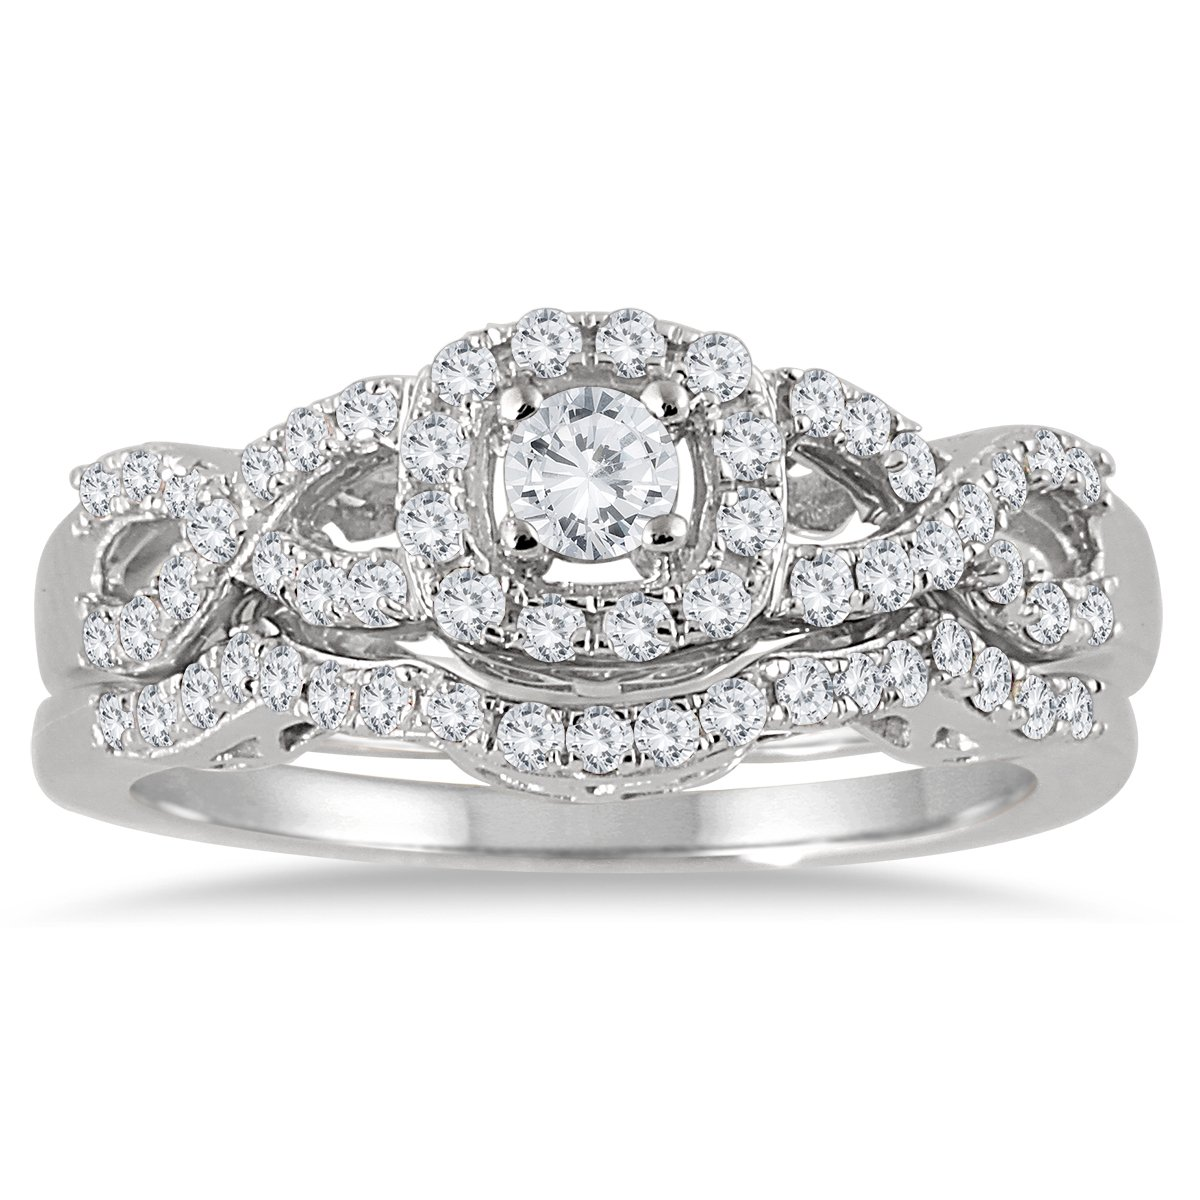 AGS Certified 3/4 Carat TW Diamond Infinity Bridal Set in 10K White Gold (K-L Color, I2-I3 Clarity)